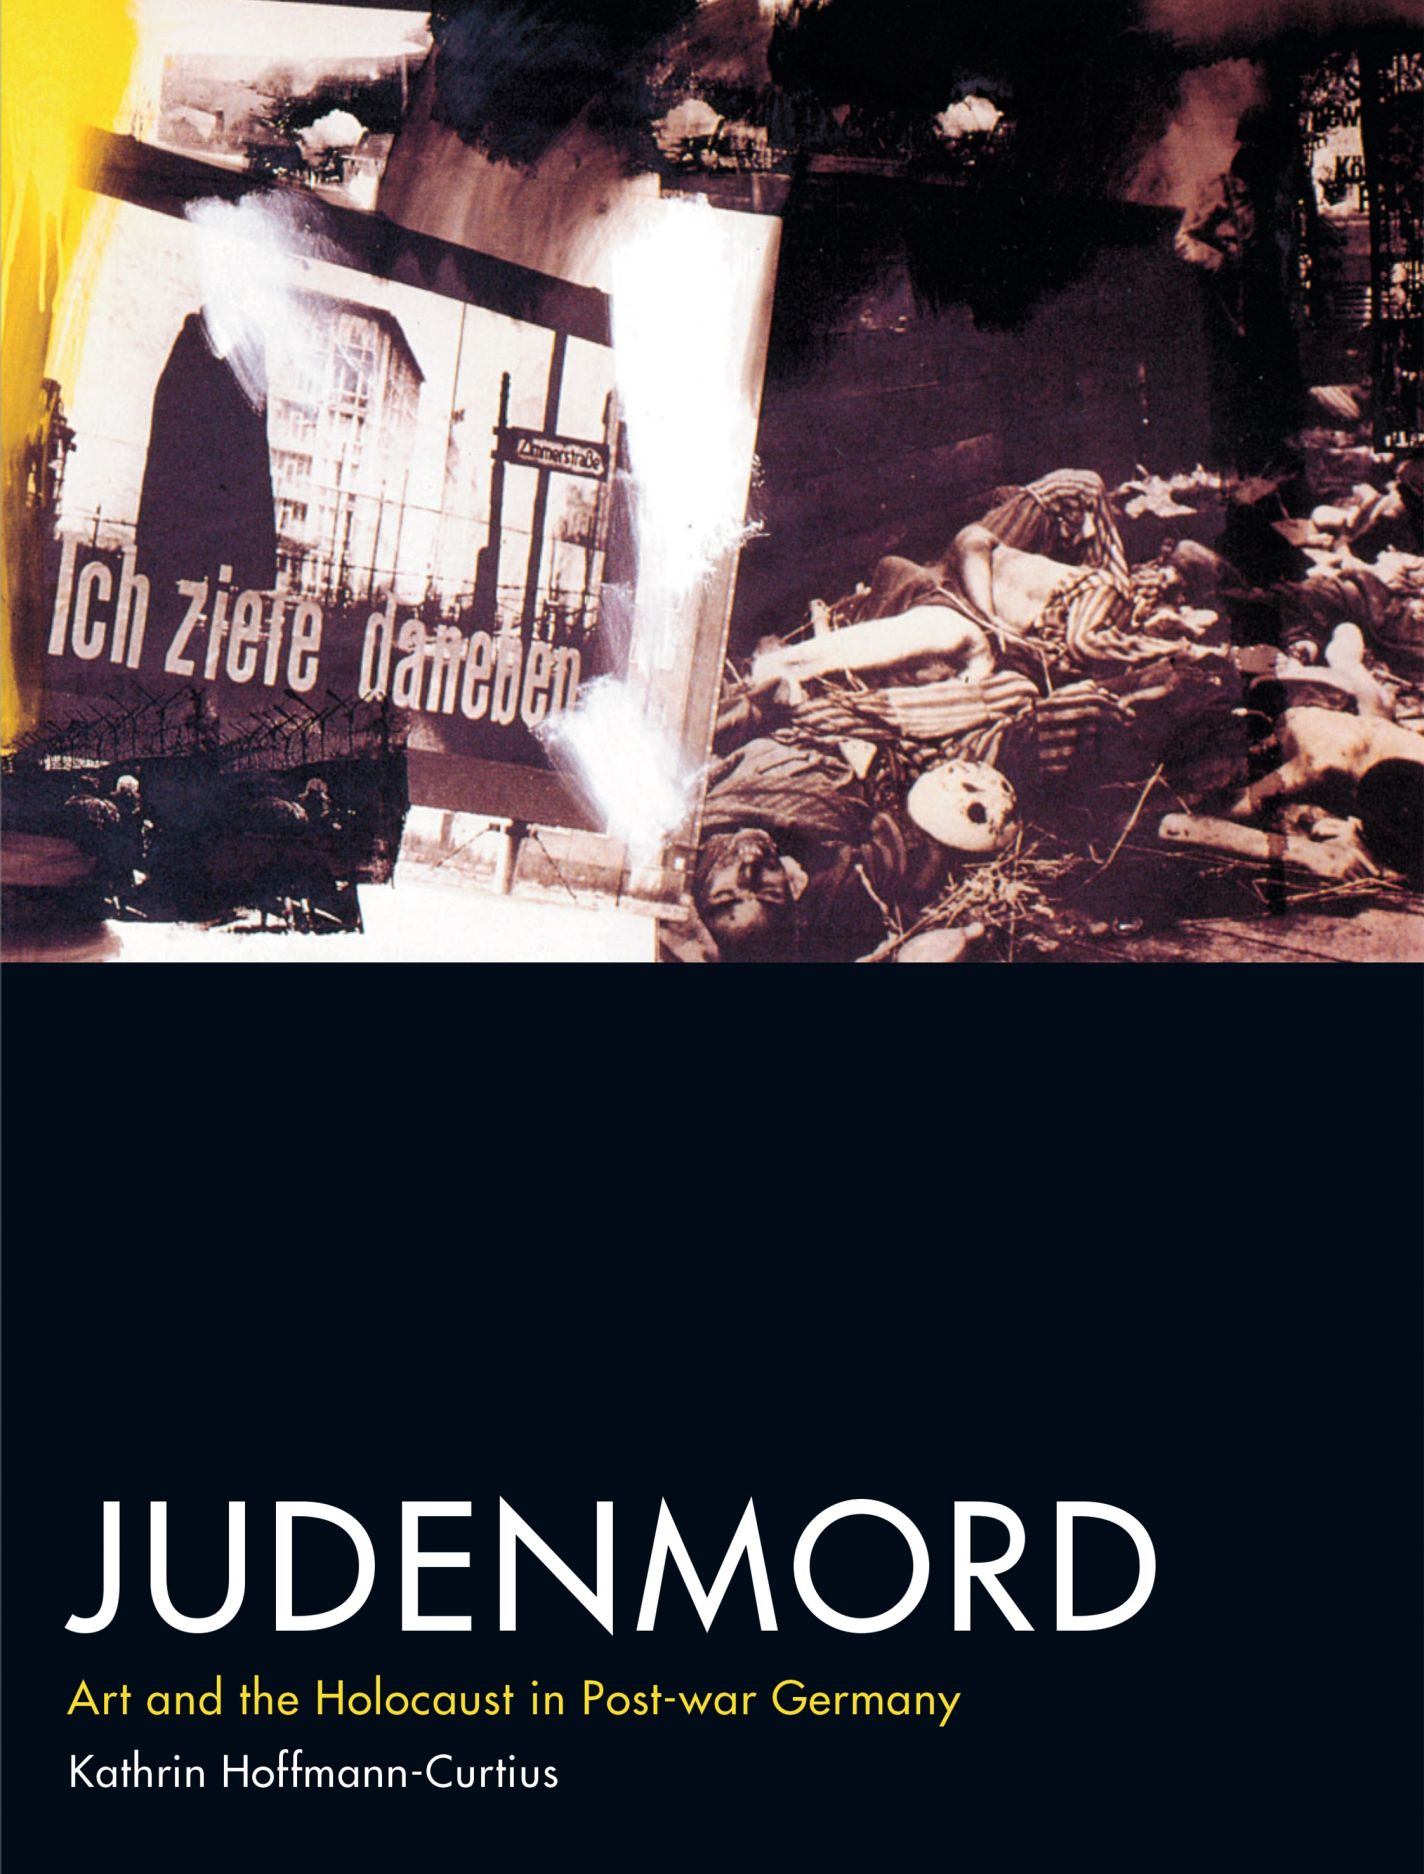 Judenmord: Art and the Holocaust in Post-war Germany